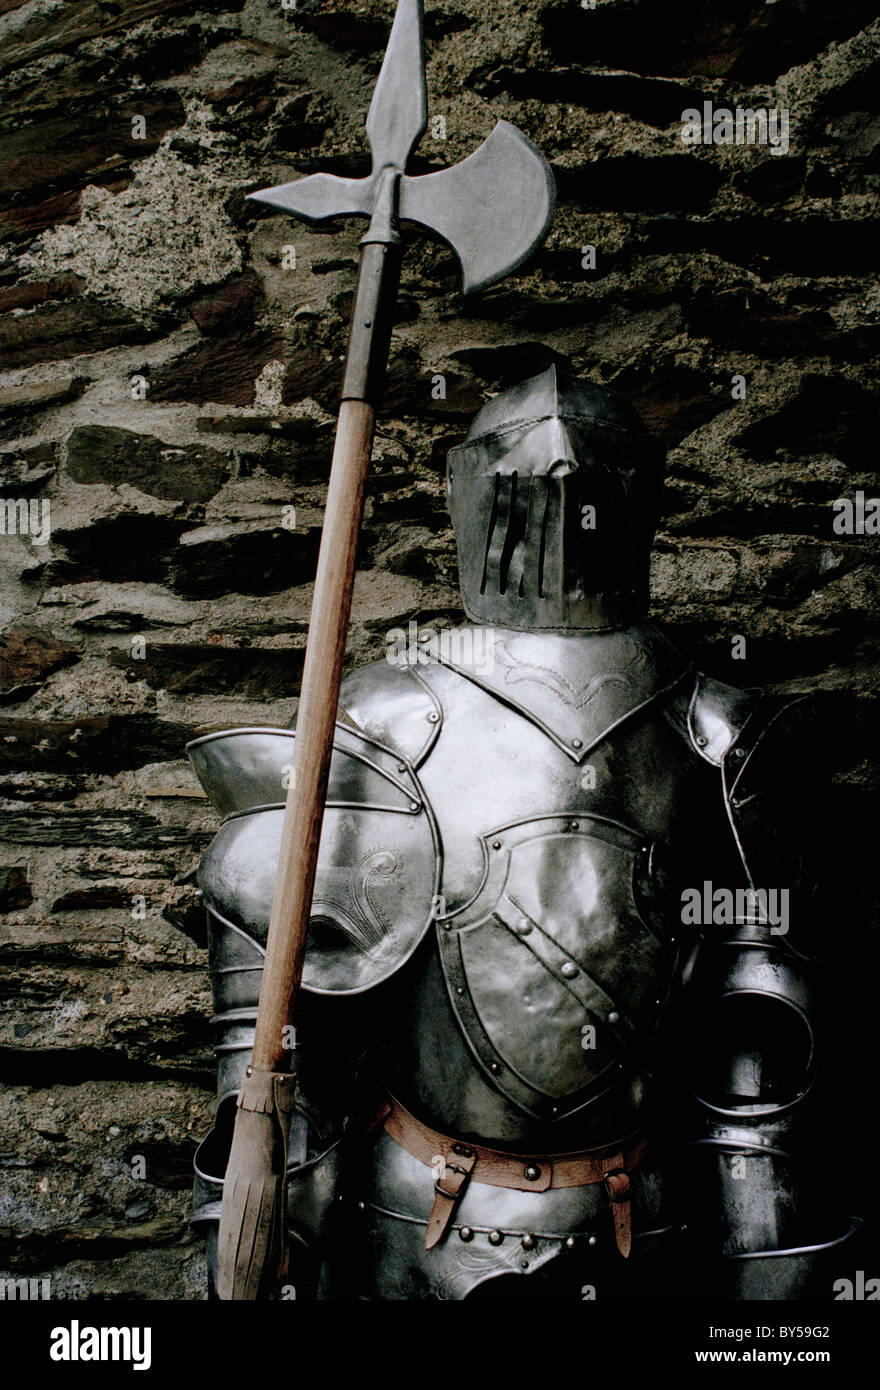 Suit of armor with an axe - Stock Image